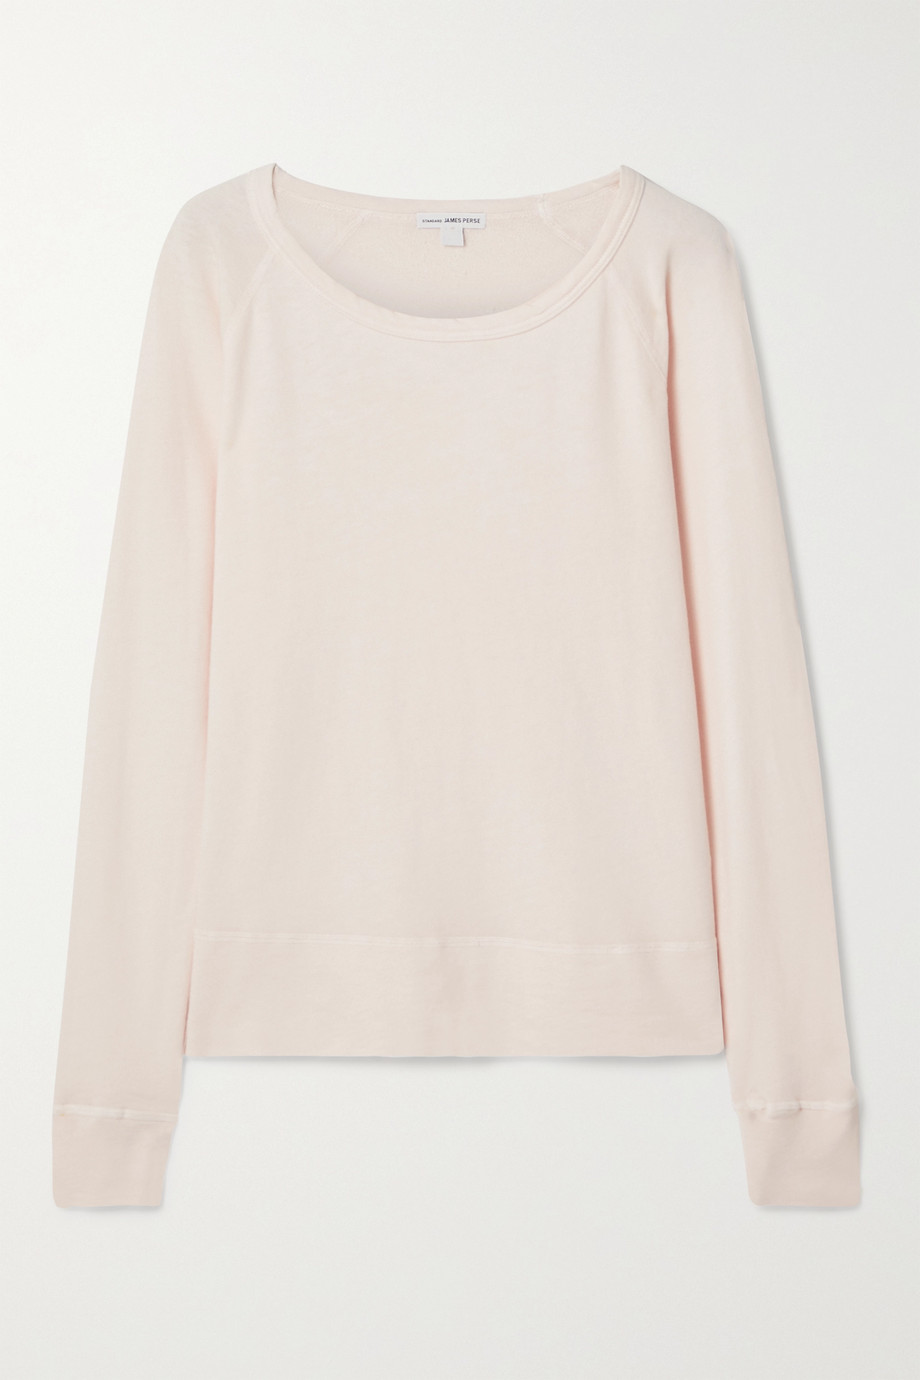 JAMES PERSE Cotton-terry top